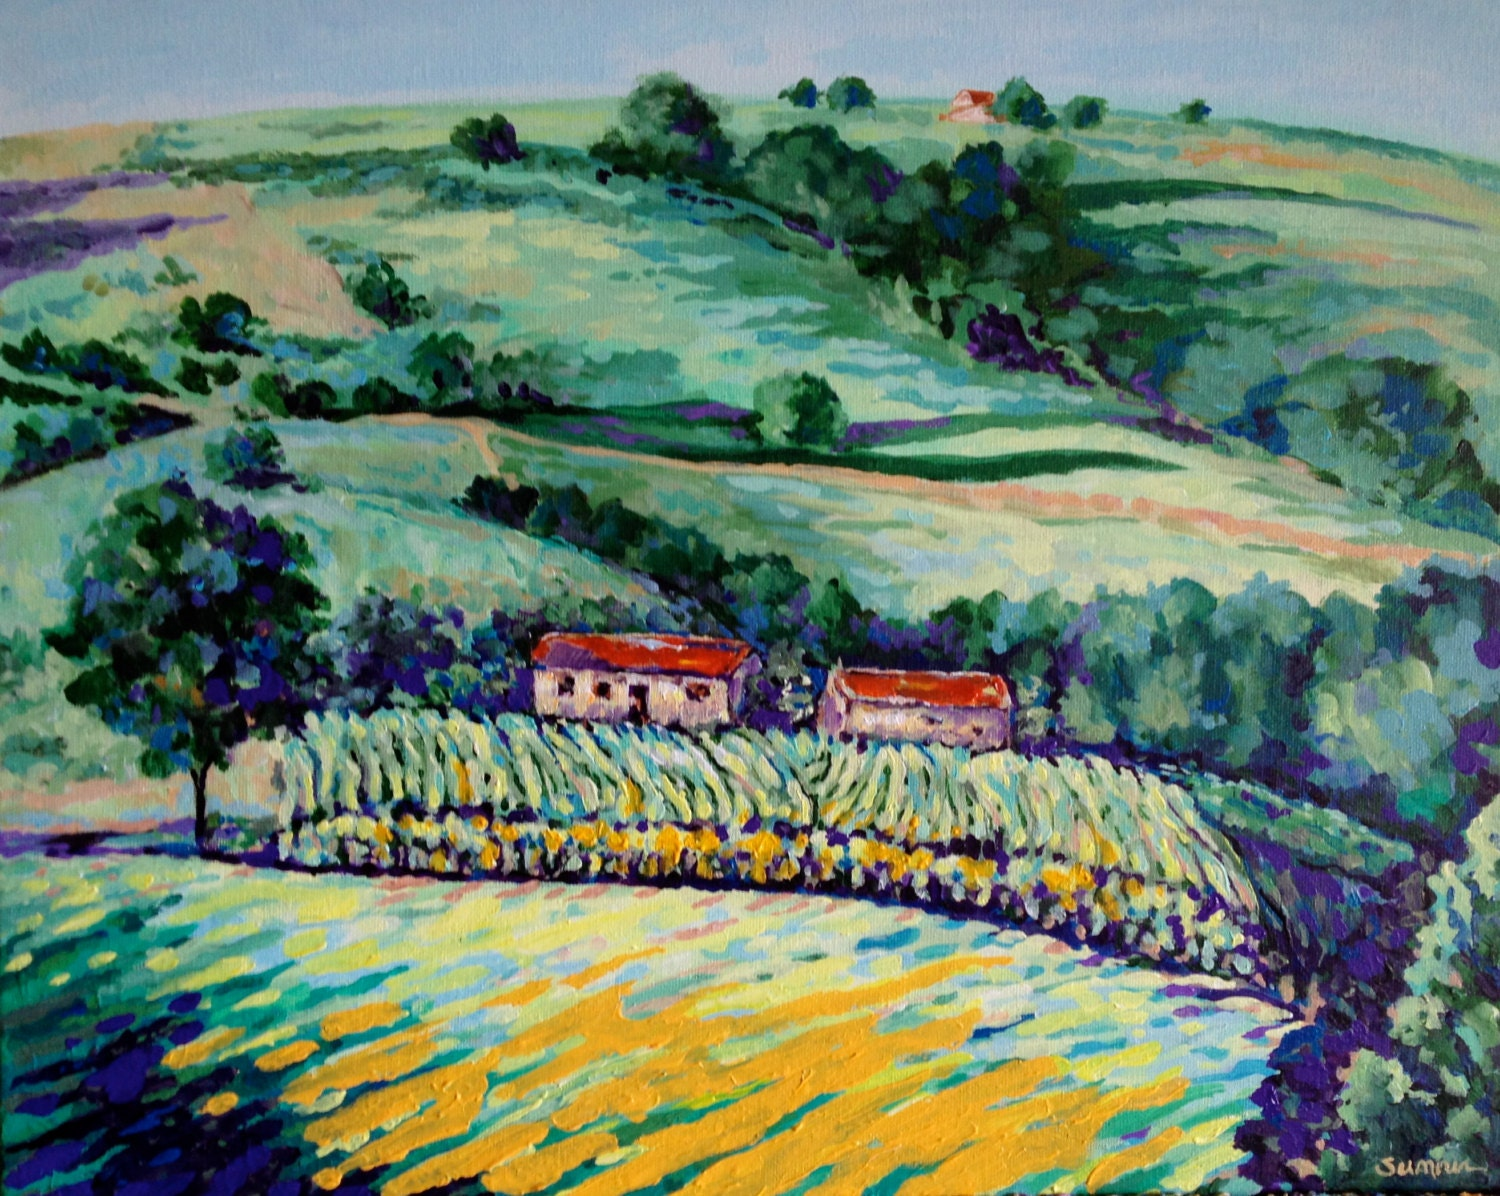 French Countryside, 16 x 20 Acrylic Painting, Impressionism, Gallery-Wrappd Canvas - rosemarysumner